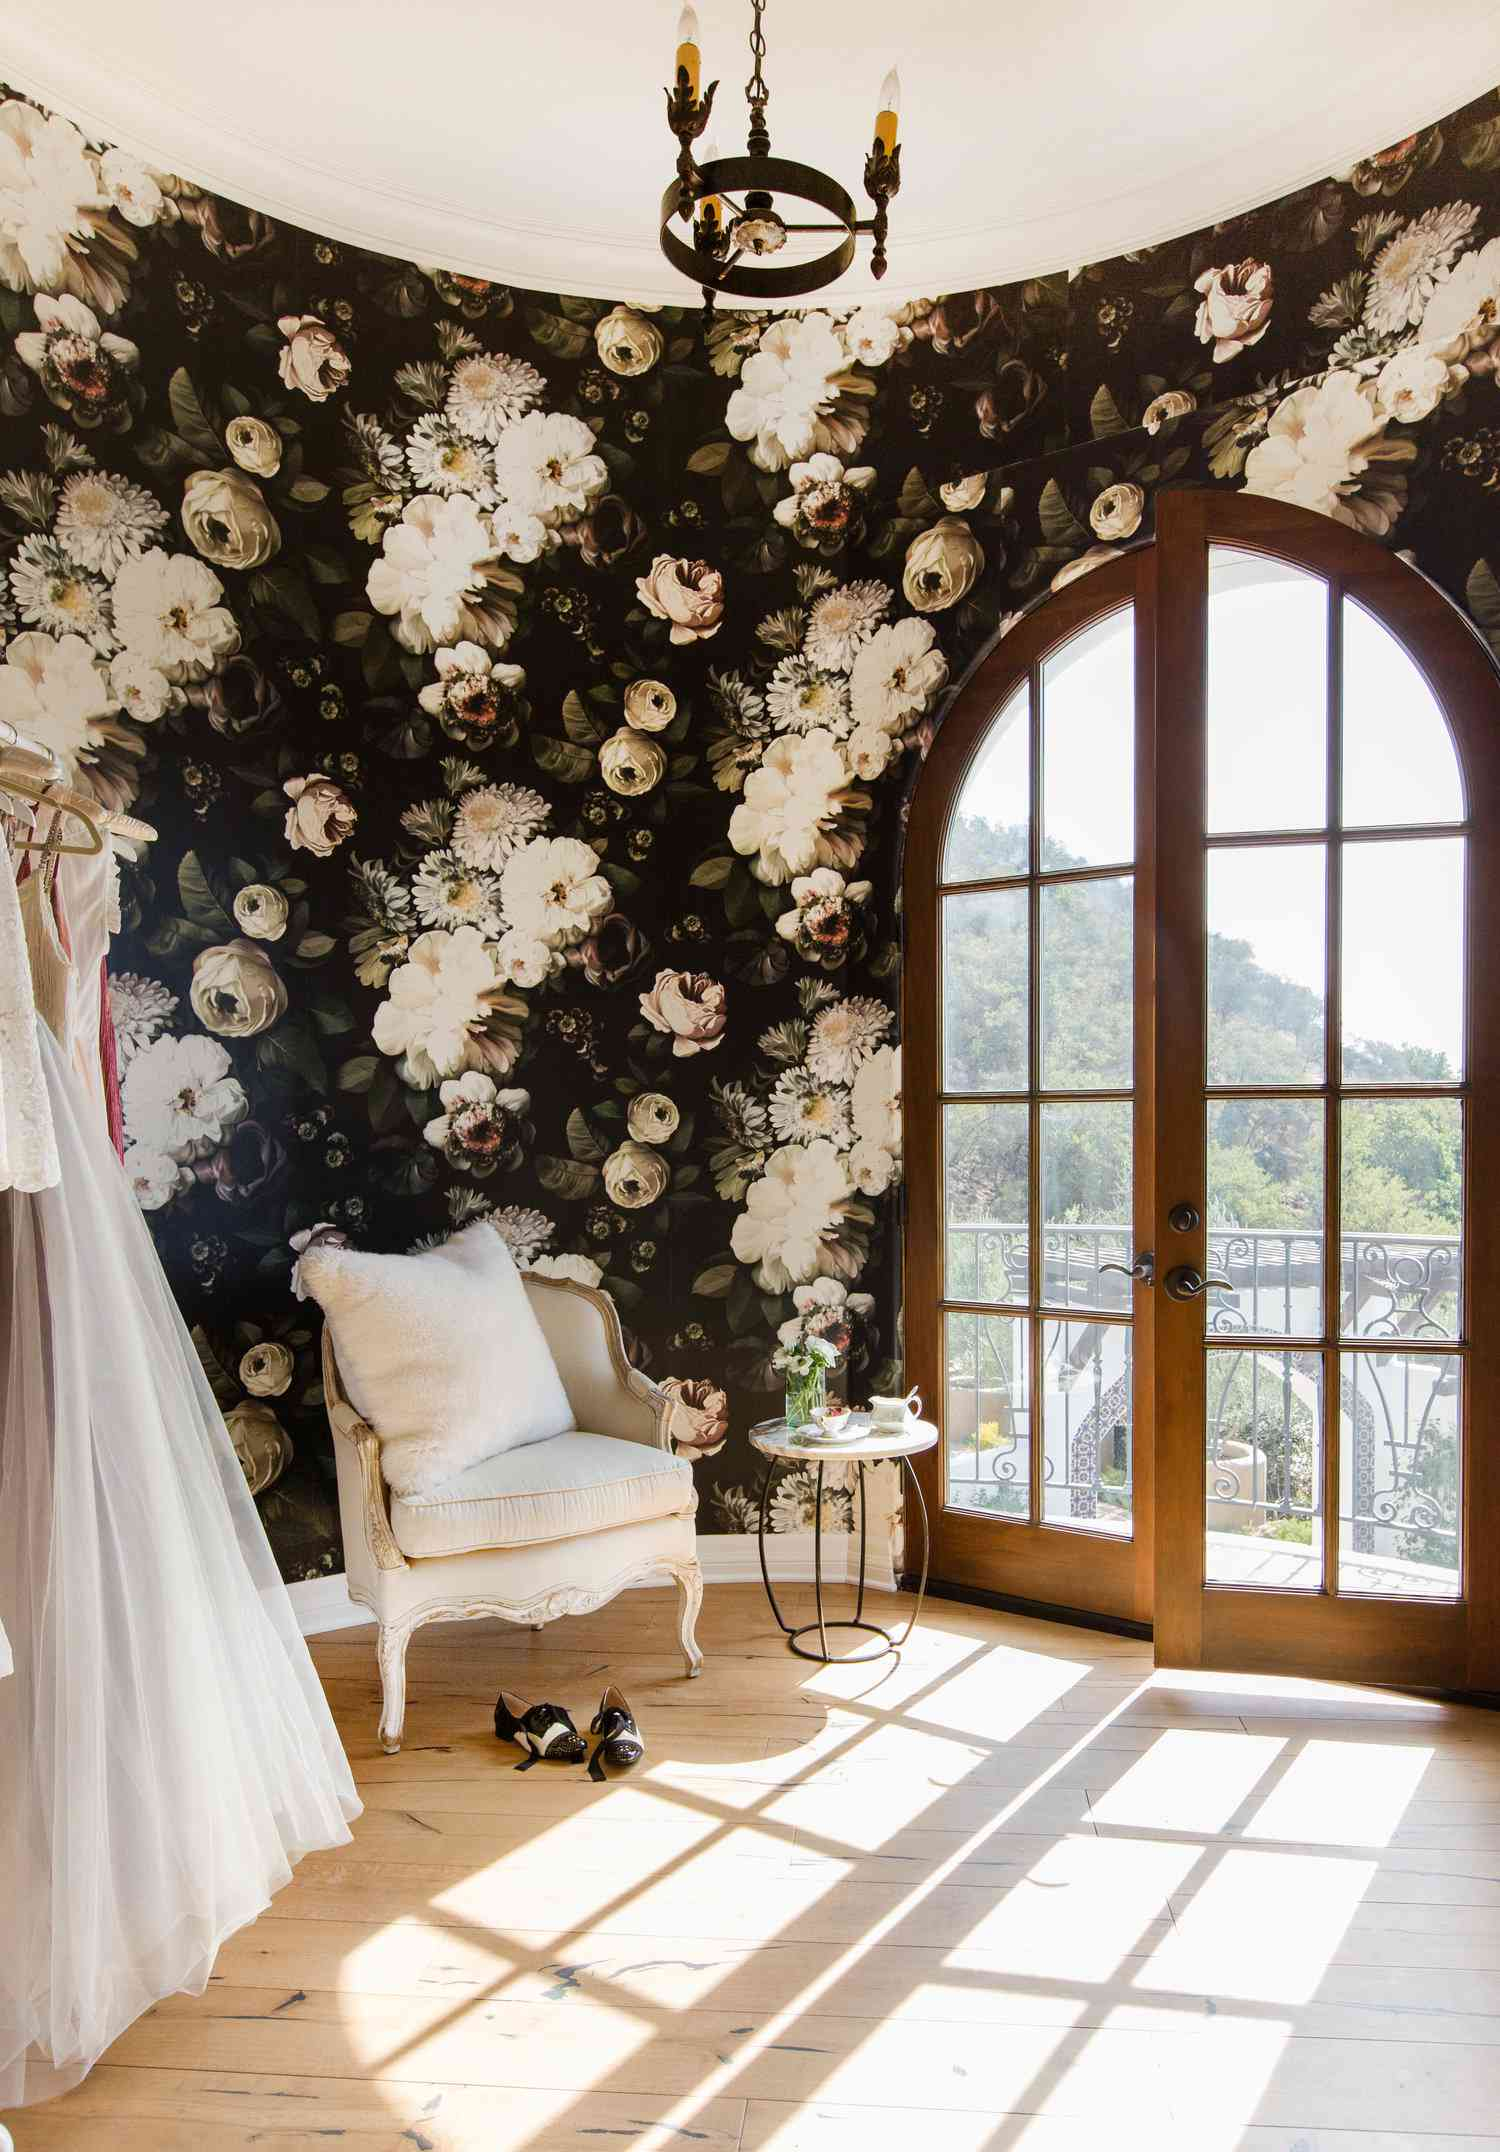 Dressing room with graphic floral wallpaper